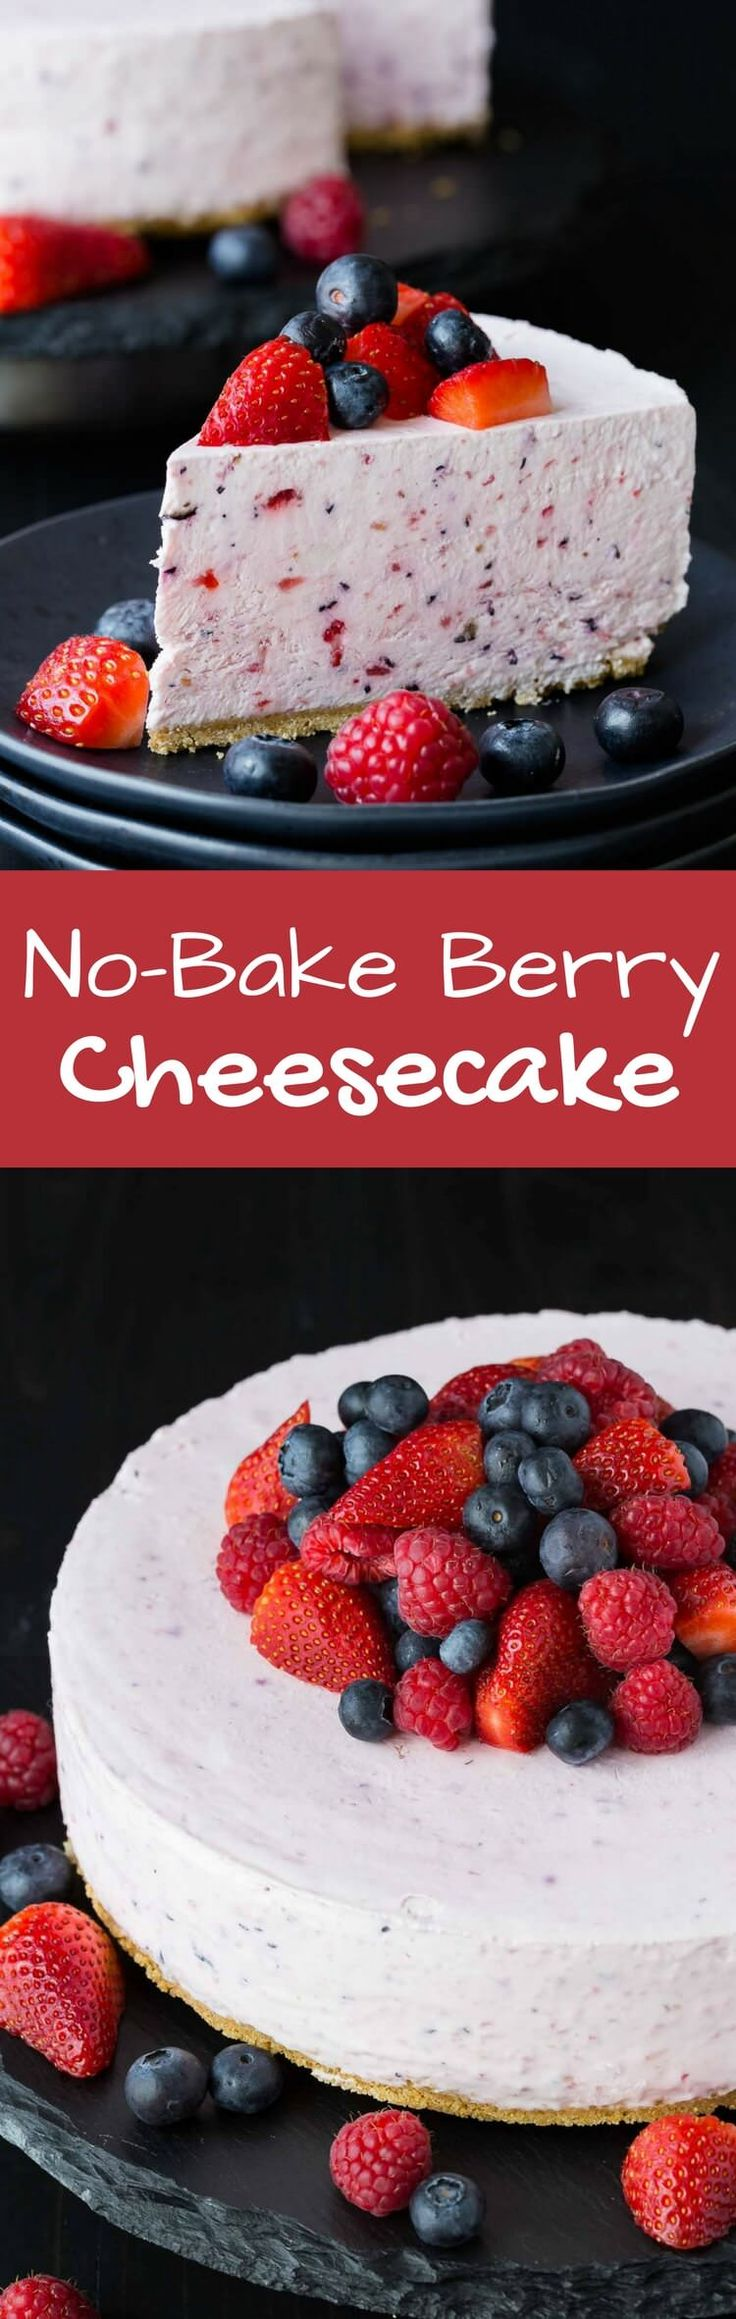 This no bake berry cheesecake is one of those that you will want to make for every summer party. It's full of strawberries and blueberries. via @introvertbaker